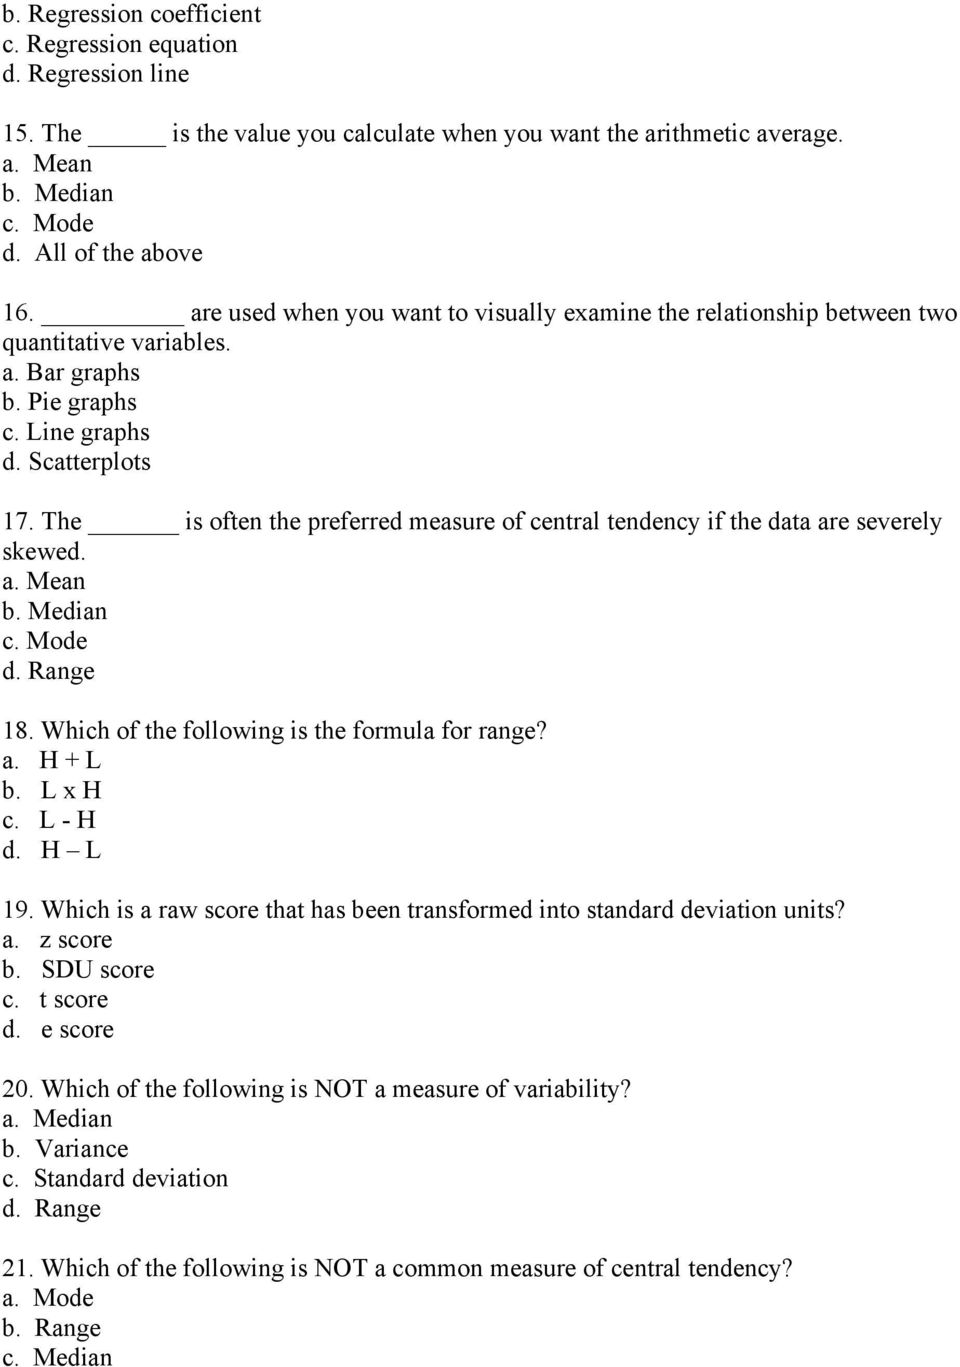 Chapter 15 Multiple Choice Questions (The answers are